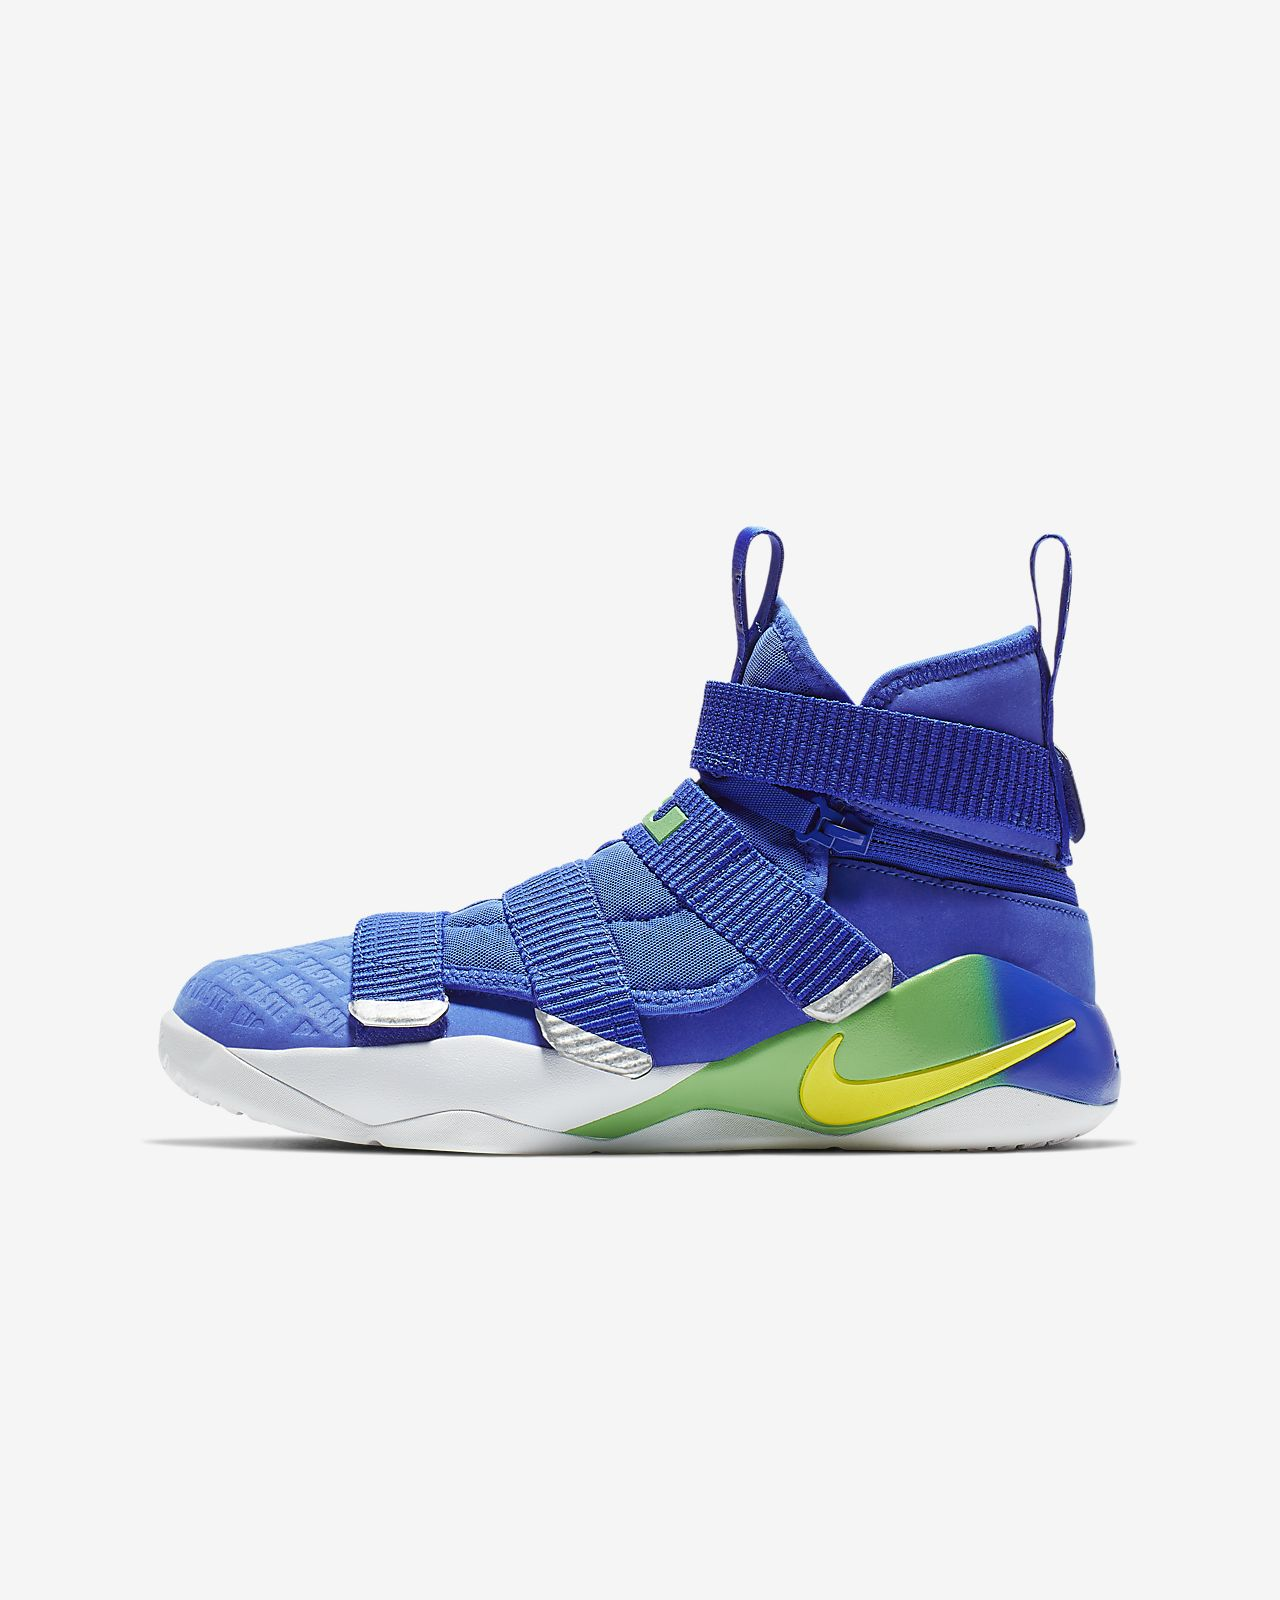 best service aaecb 3fa3d LeBron Soldier 11 FlyEase Big Kids' Basketball Shoe